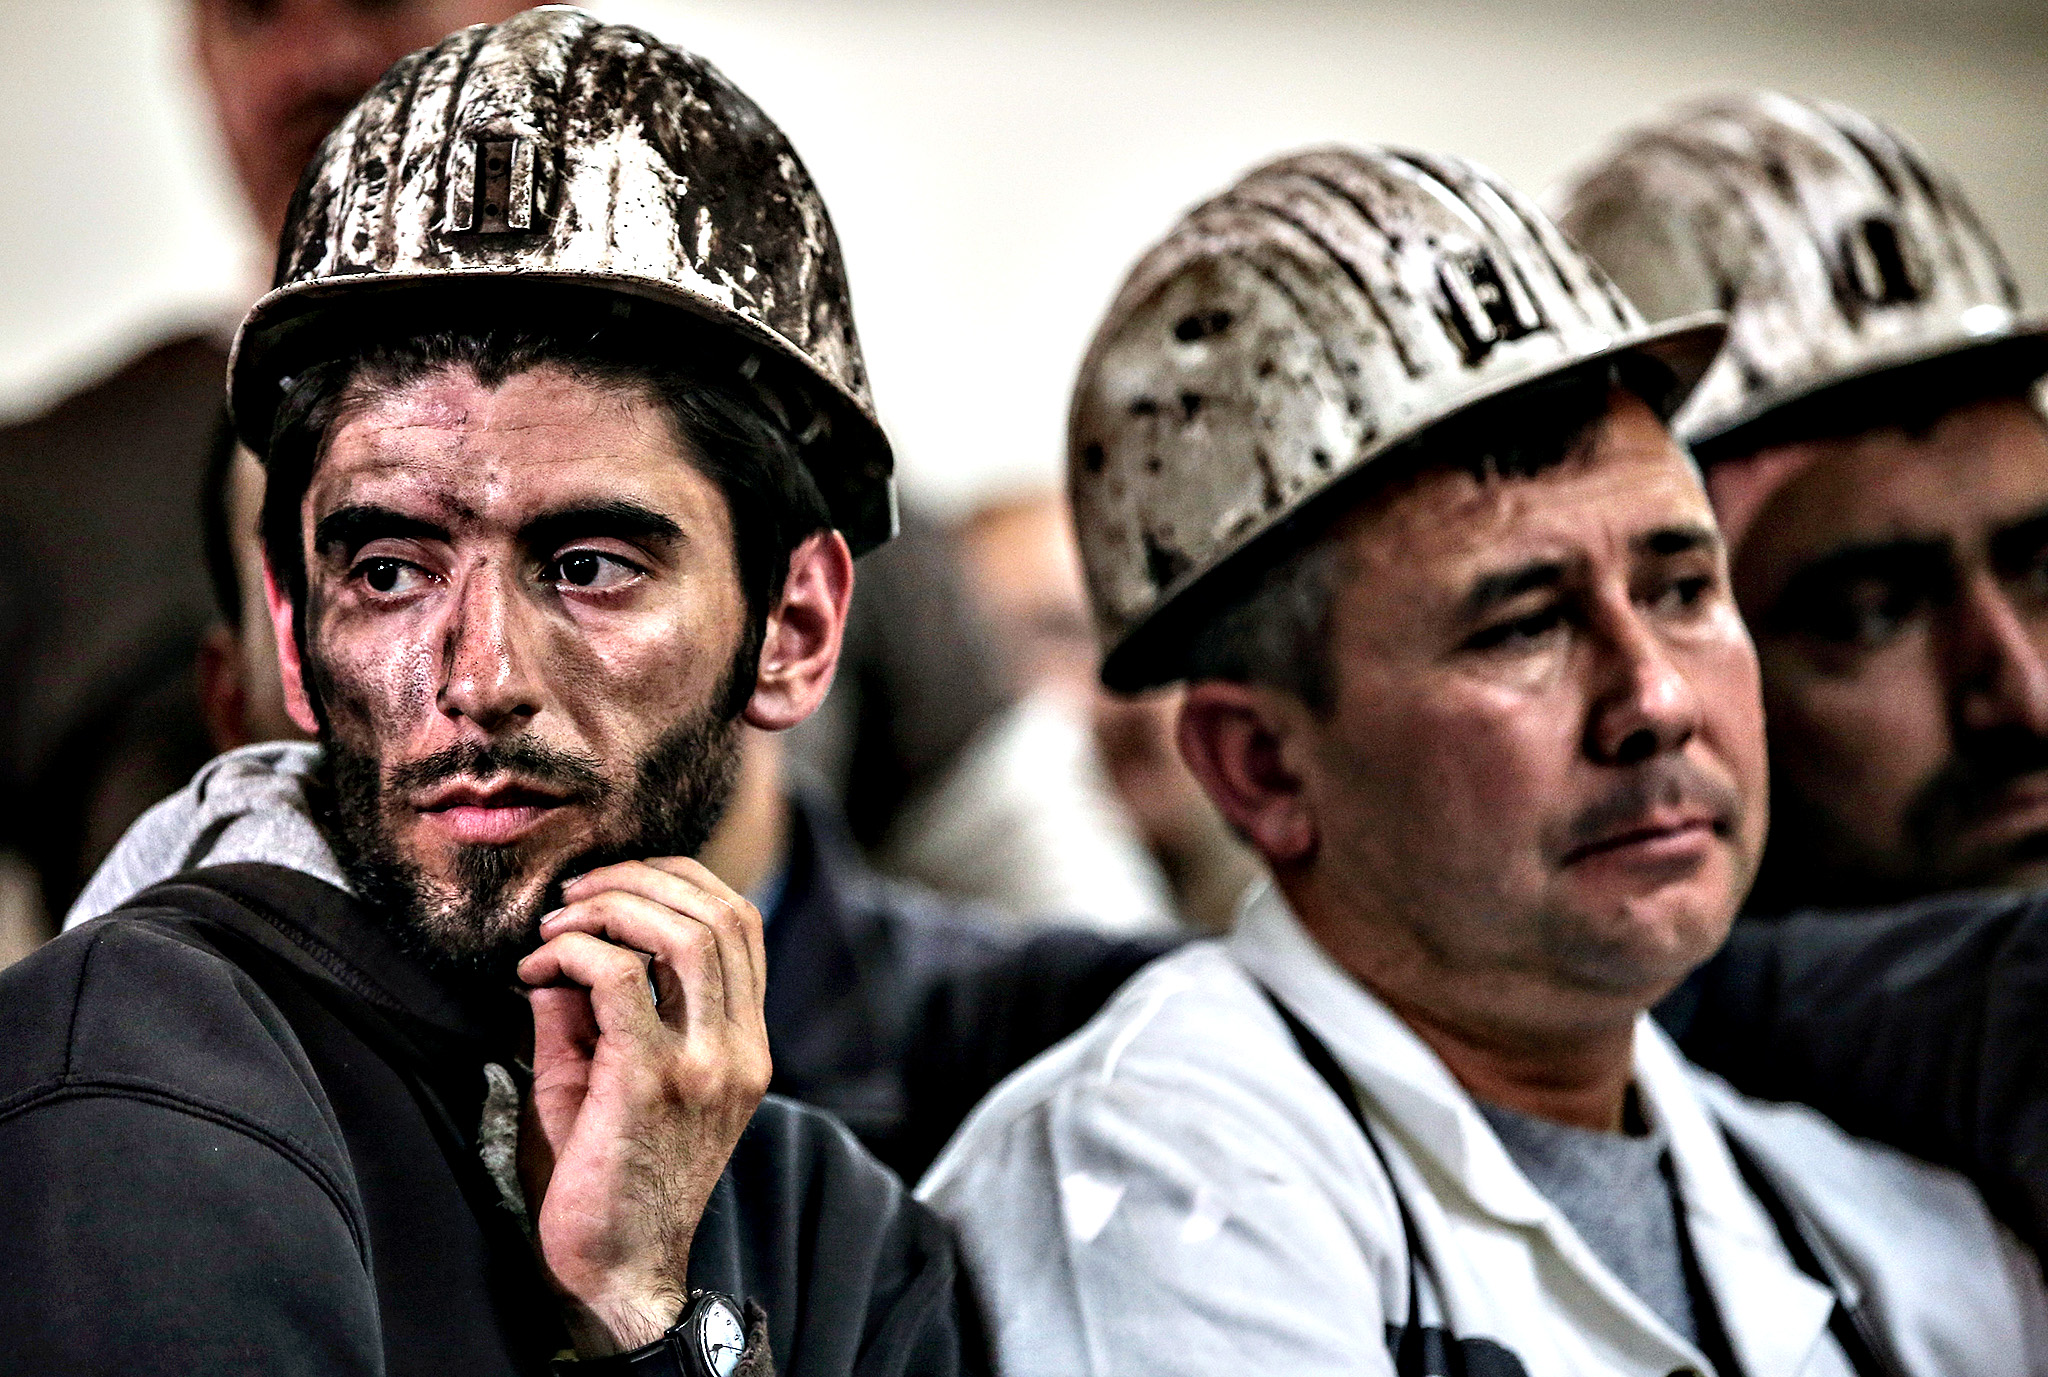 Turkish miners listen to the mining company s owner, Alp Gurkan, during a news conference in Soma, Turkey, Friday, May 16, 2014. The Turkish mining company defended its safety record Friday, four days after over 250 people died in an underground blaze at its coal mine in western Turkey.